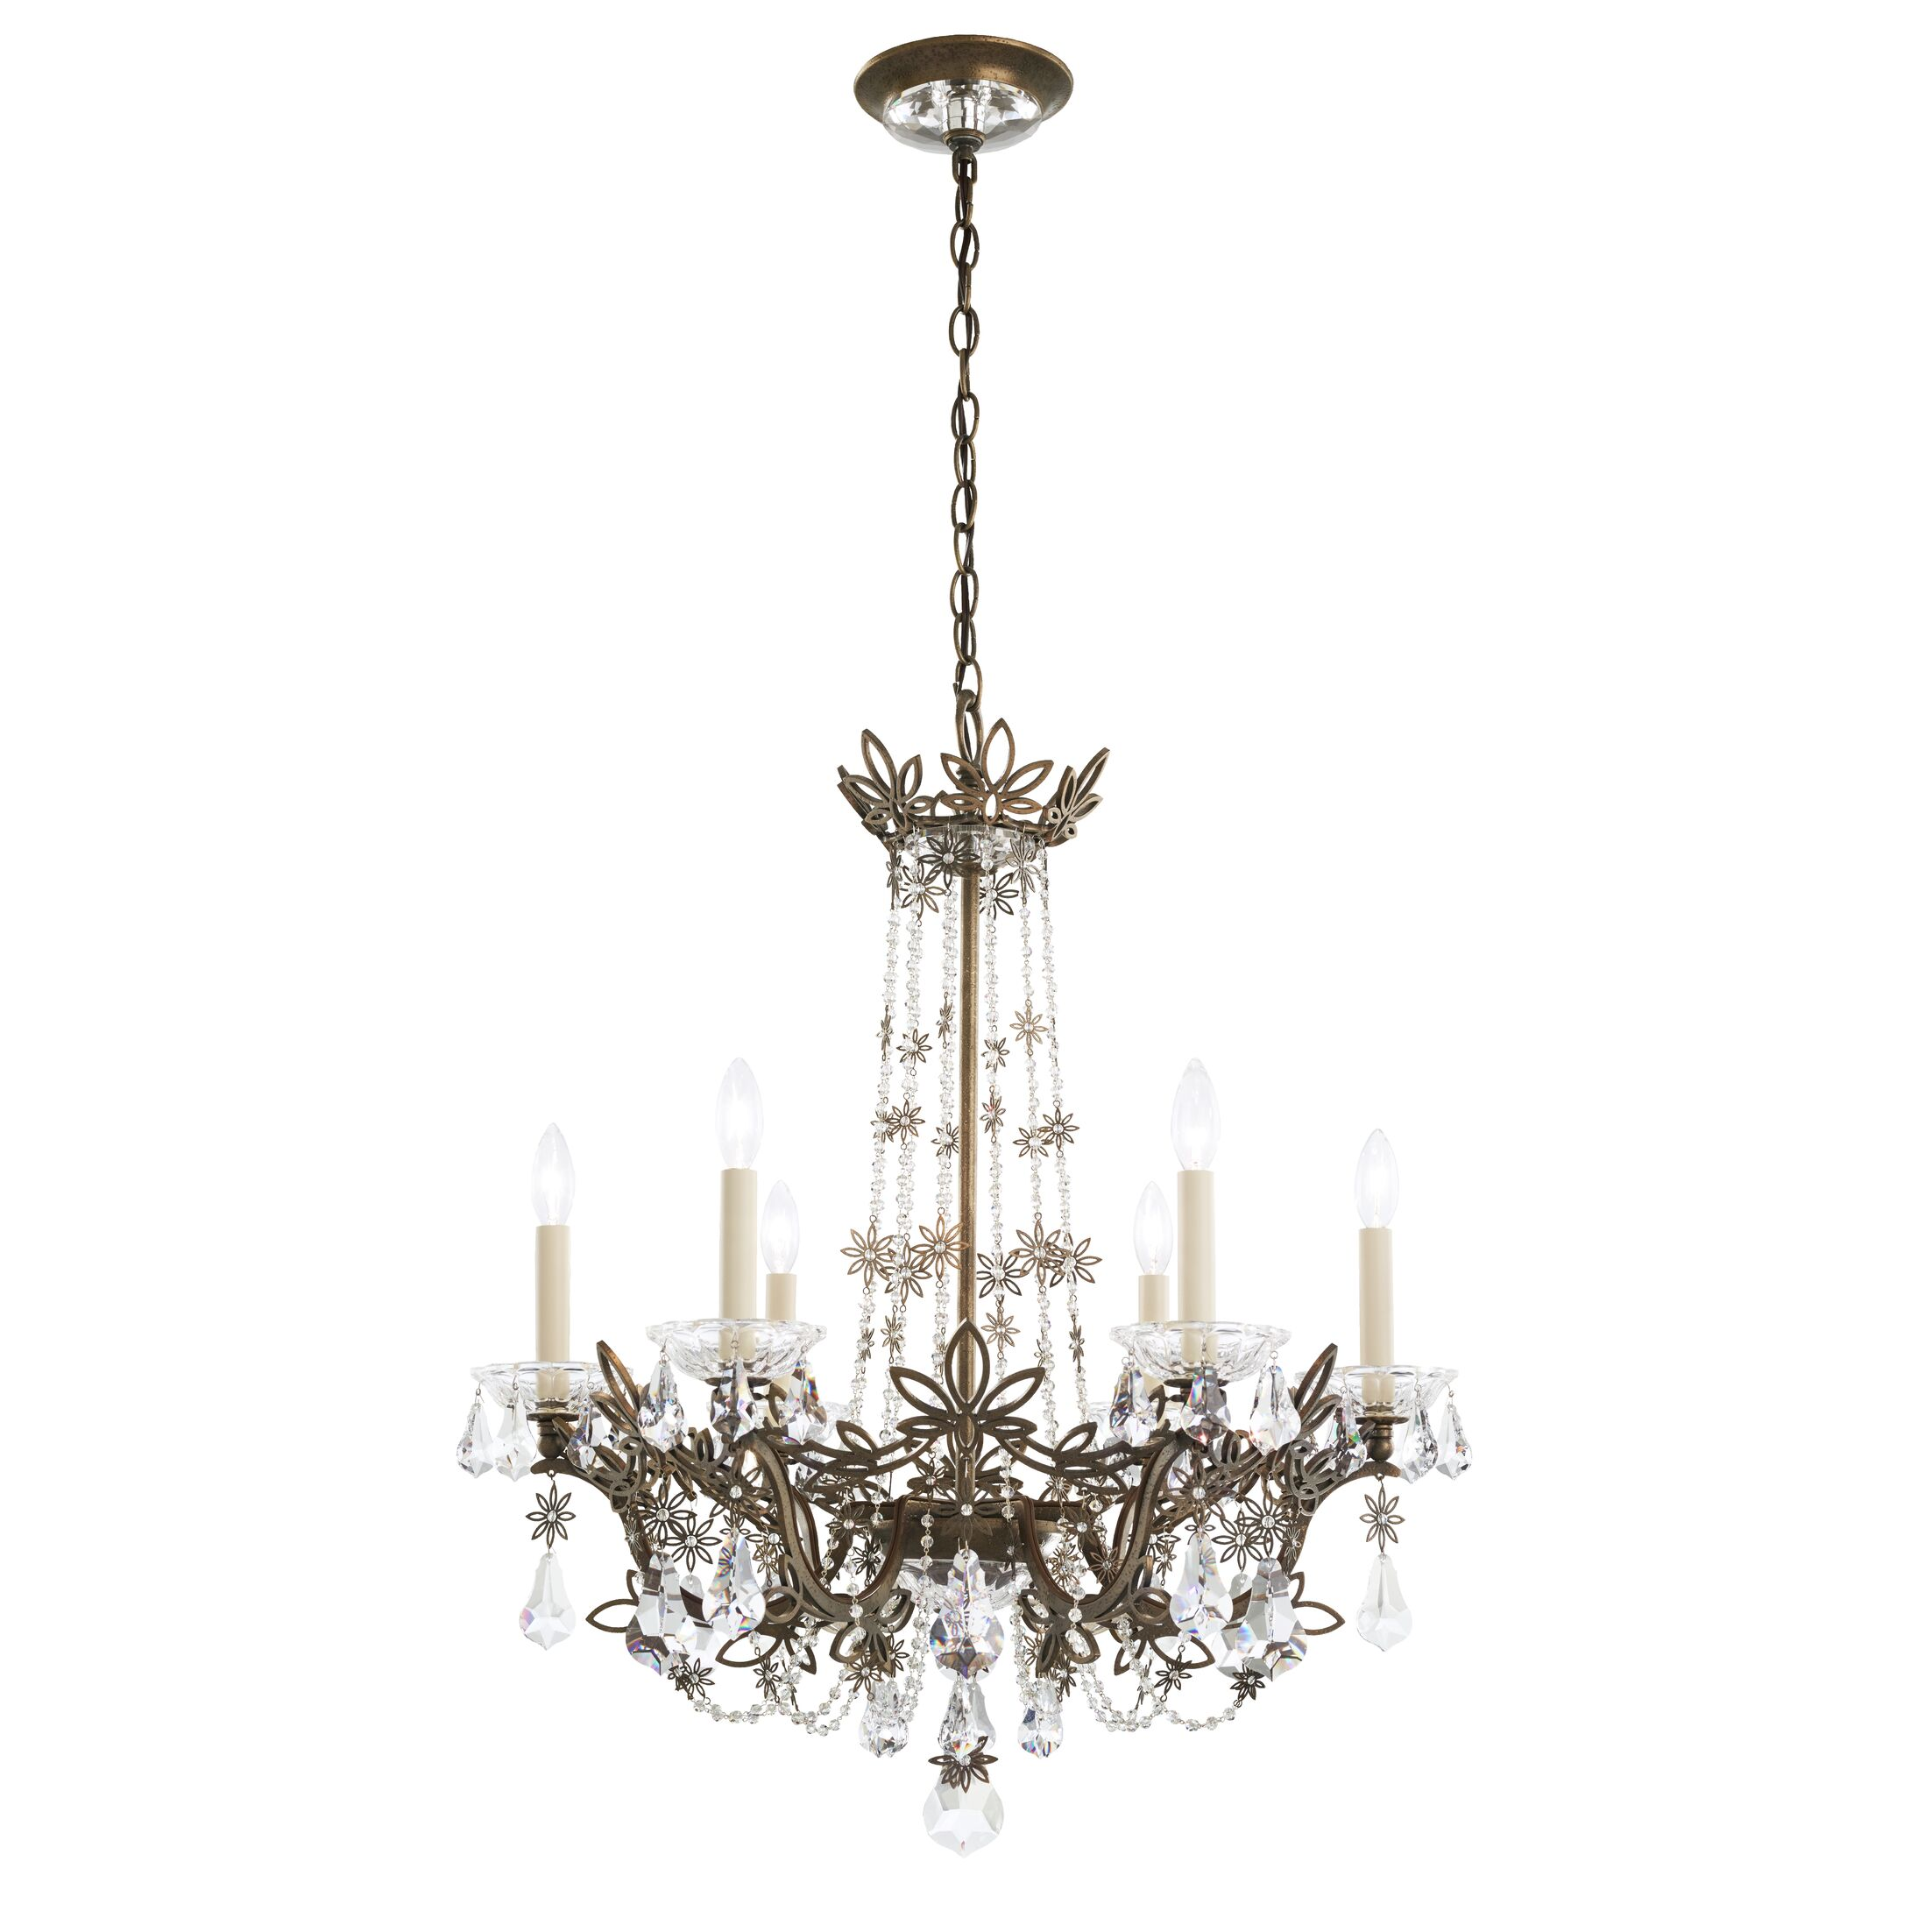 Florabella 6-Light Chandelier Crystal Grade: Heritage, Finish: Etruscan Gold